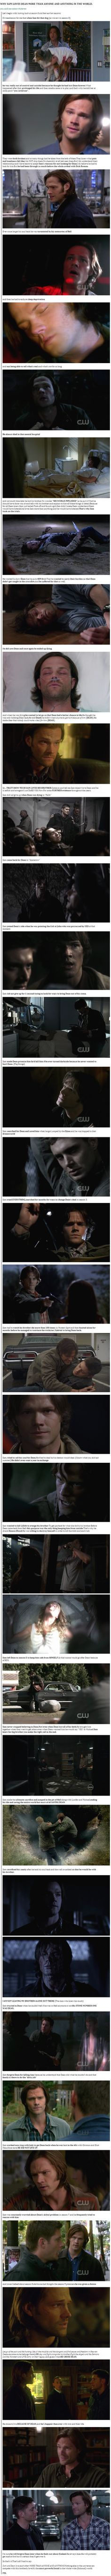 Sam loves Dean, and Dean is super overprotective of Sam because he loves his brother right back :) it's what family does.